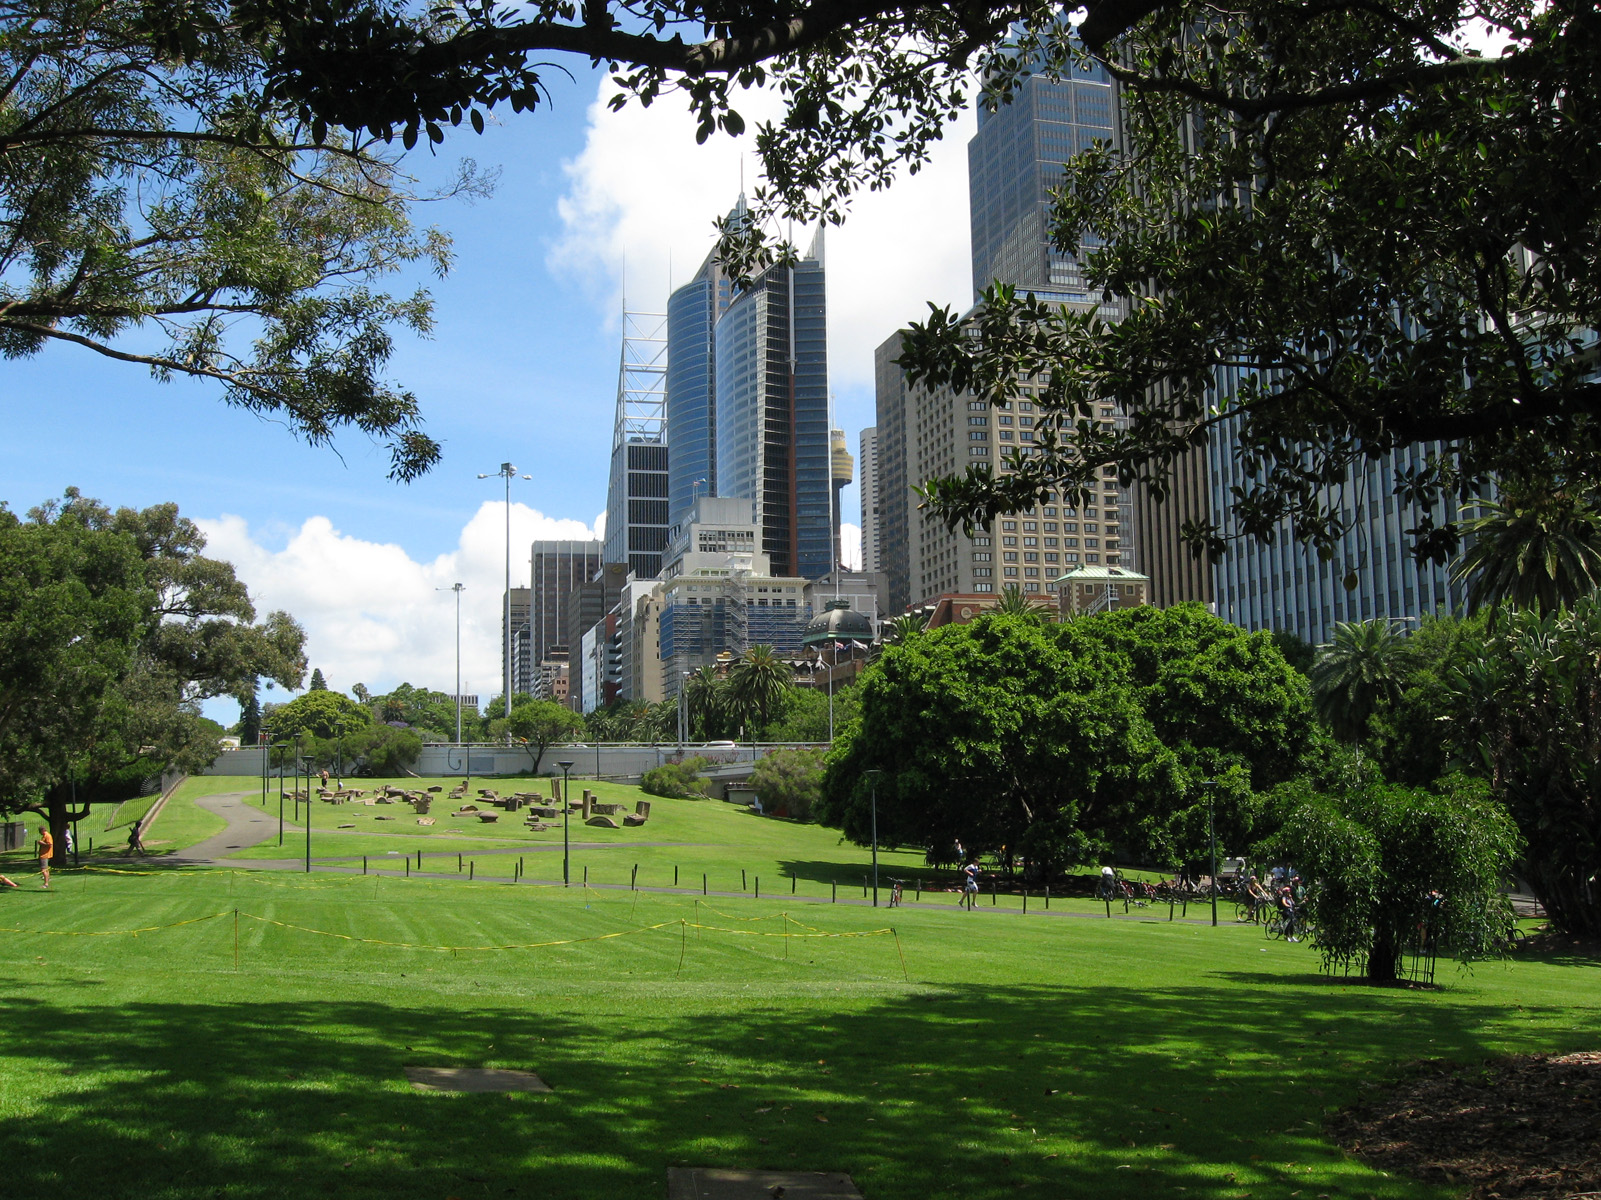 City centre from the botanical gardens